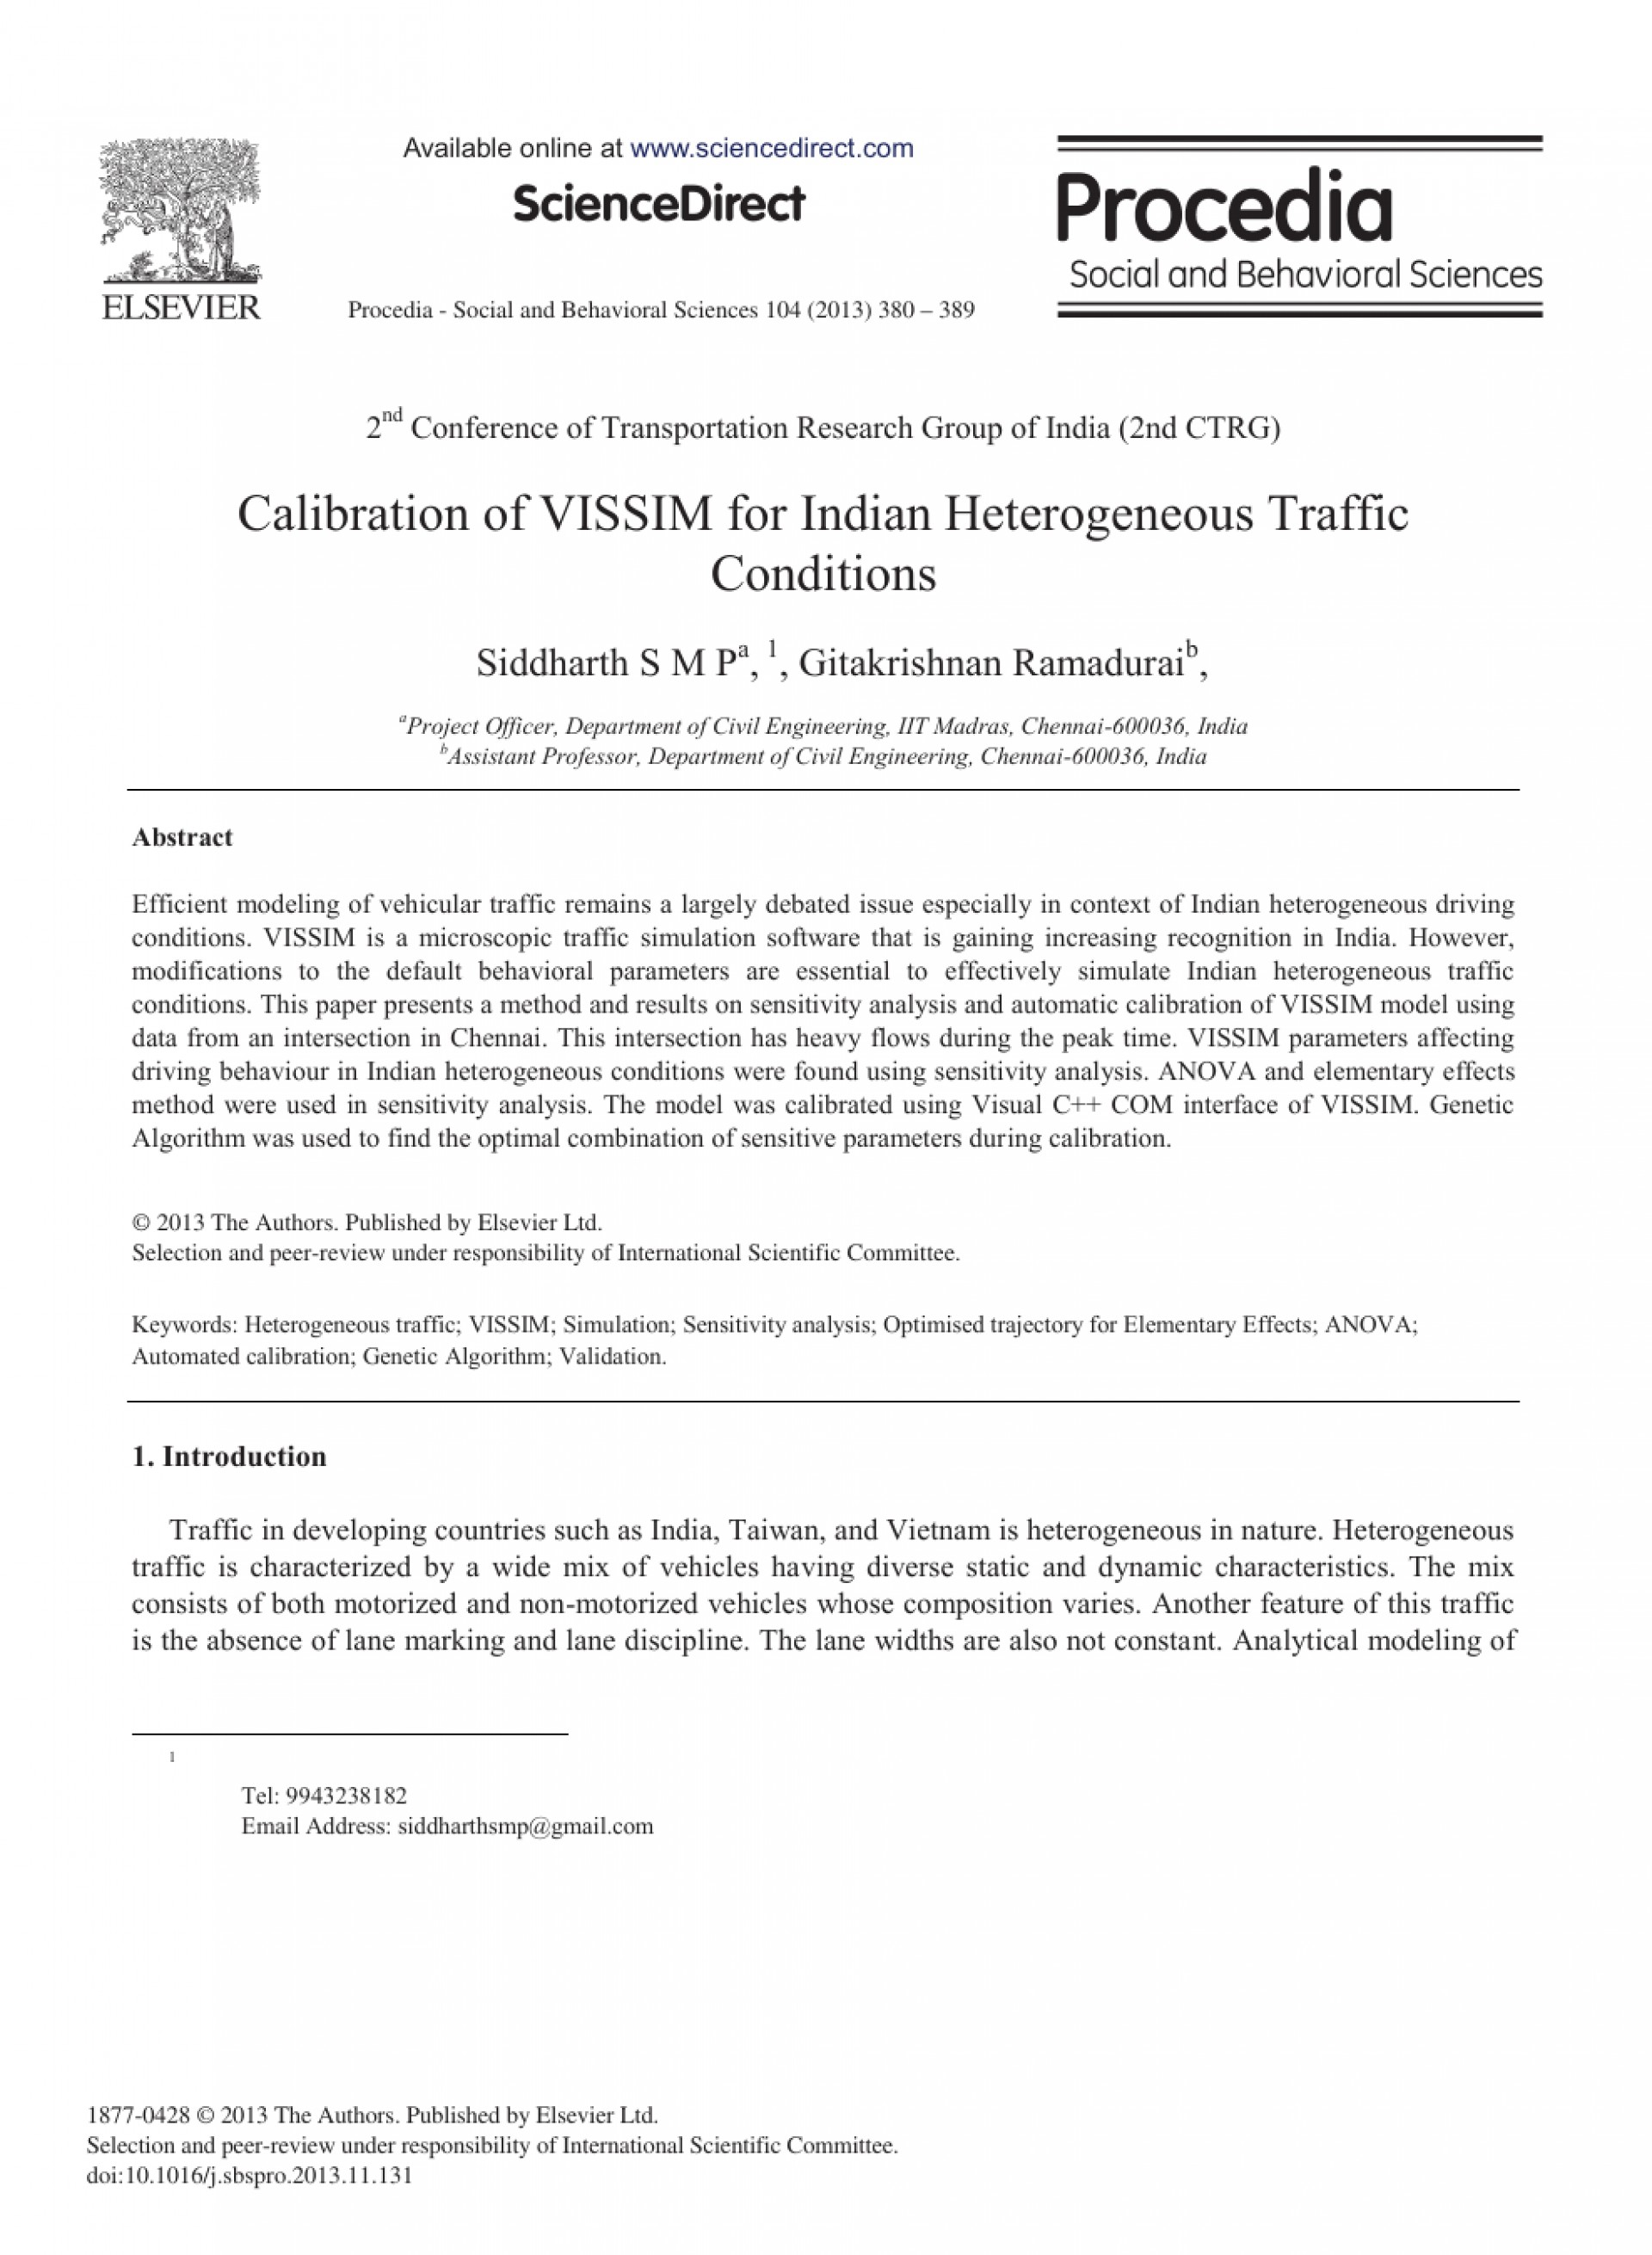 012 Research Paper How To Get Published India Singular 1920